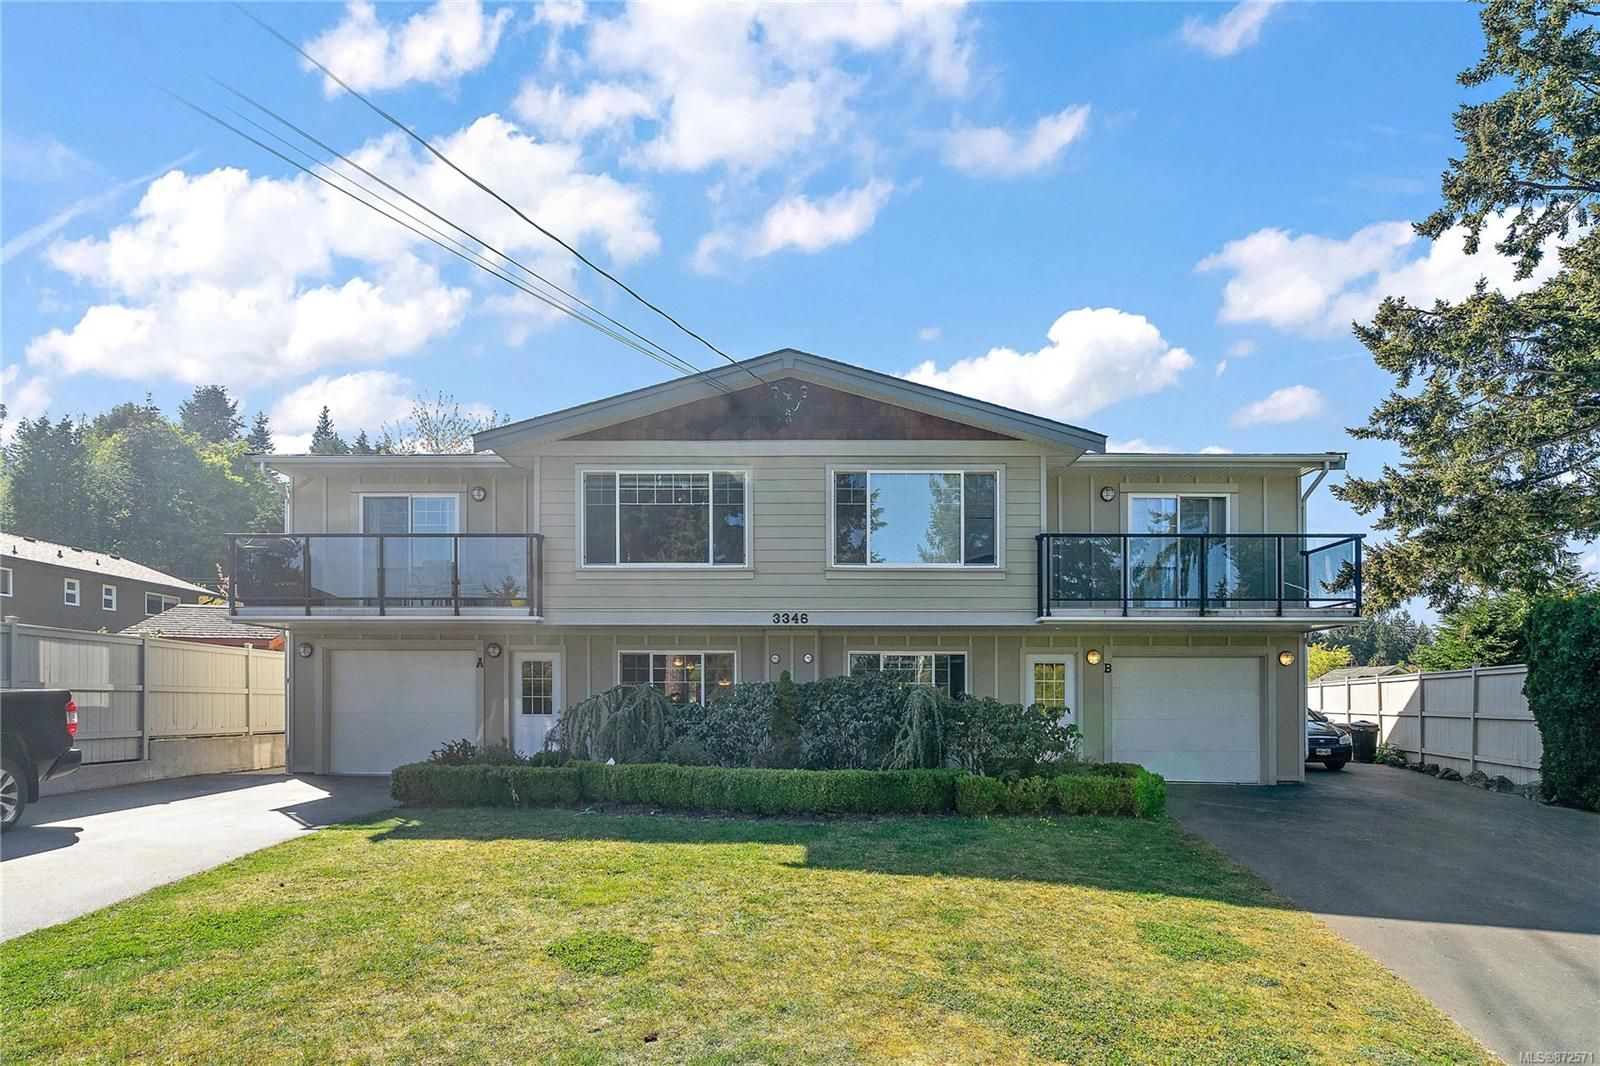 Main Photo: B 3346 Willowdale Rd in : Co Triangle Half Duplex for sale (Colwood)  : MLS®# 872571